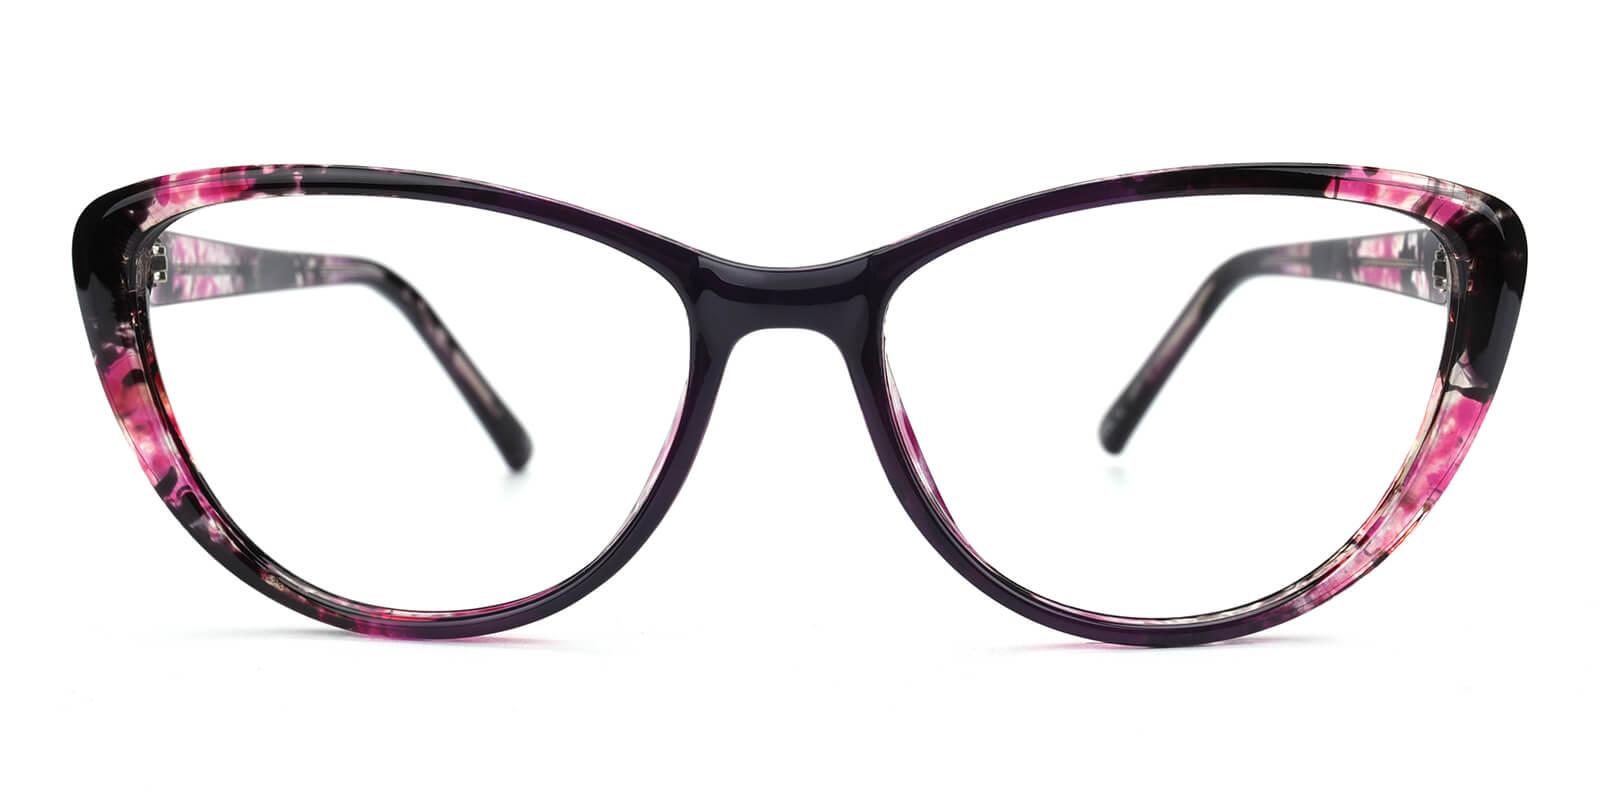 Slackey-Pink-Oval / Cat-Acetate-Eyeglasses-additional2